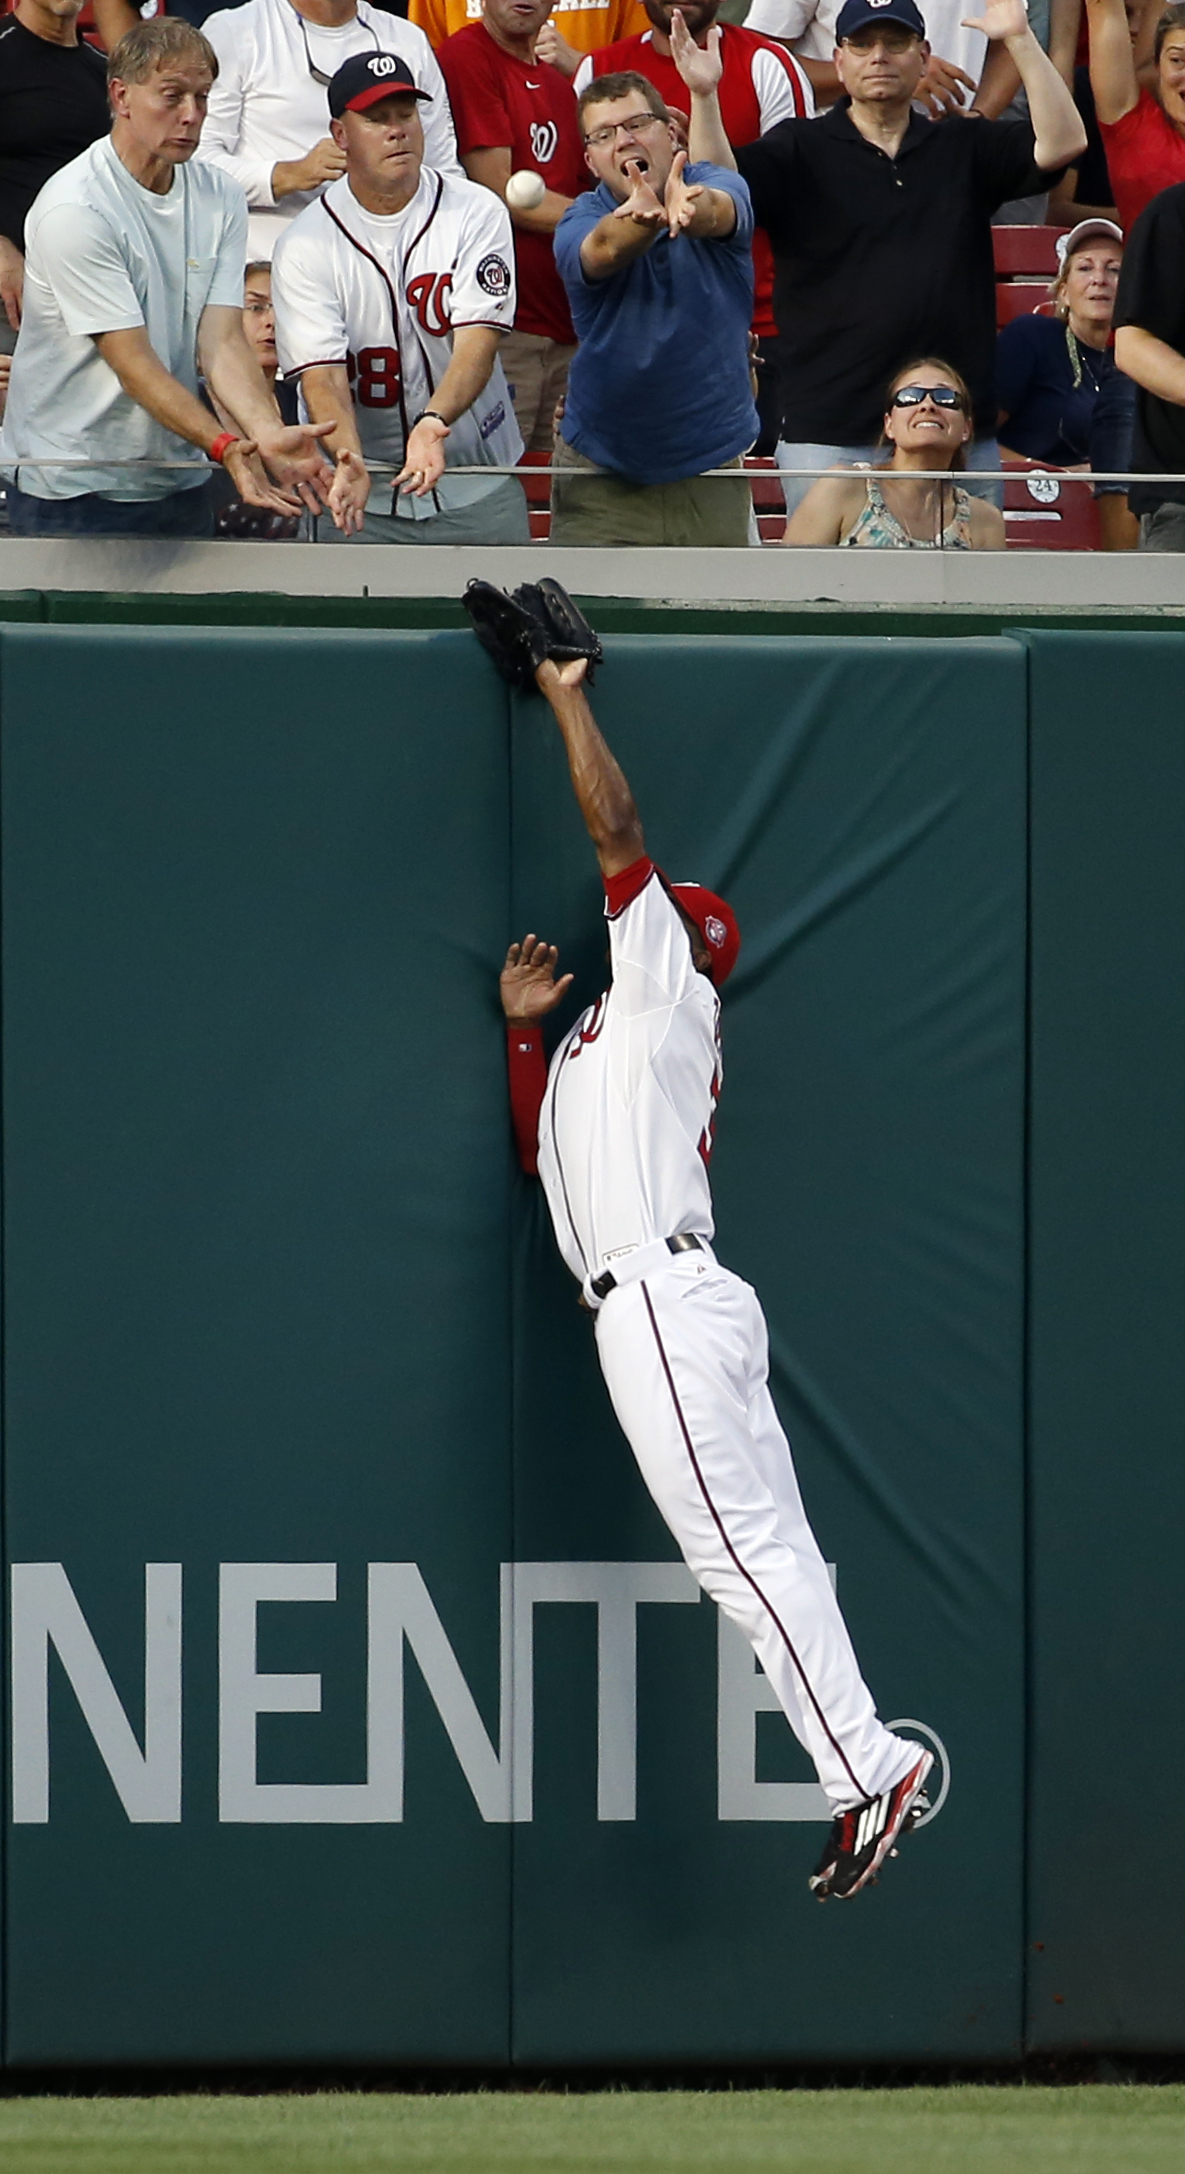 Washington Nationals center fielder Michael Taylor (3) can't catch a two-run homer by Arizona Diamondbacks' David Peralta (6) during the fourth inning of a baseball game at Nationals Park, Monday, Aug. 3, 2015, in Washington. (AP Photo/Alex Brandon)